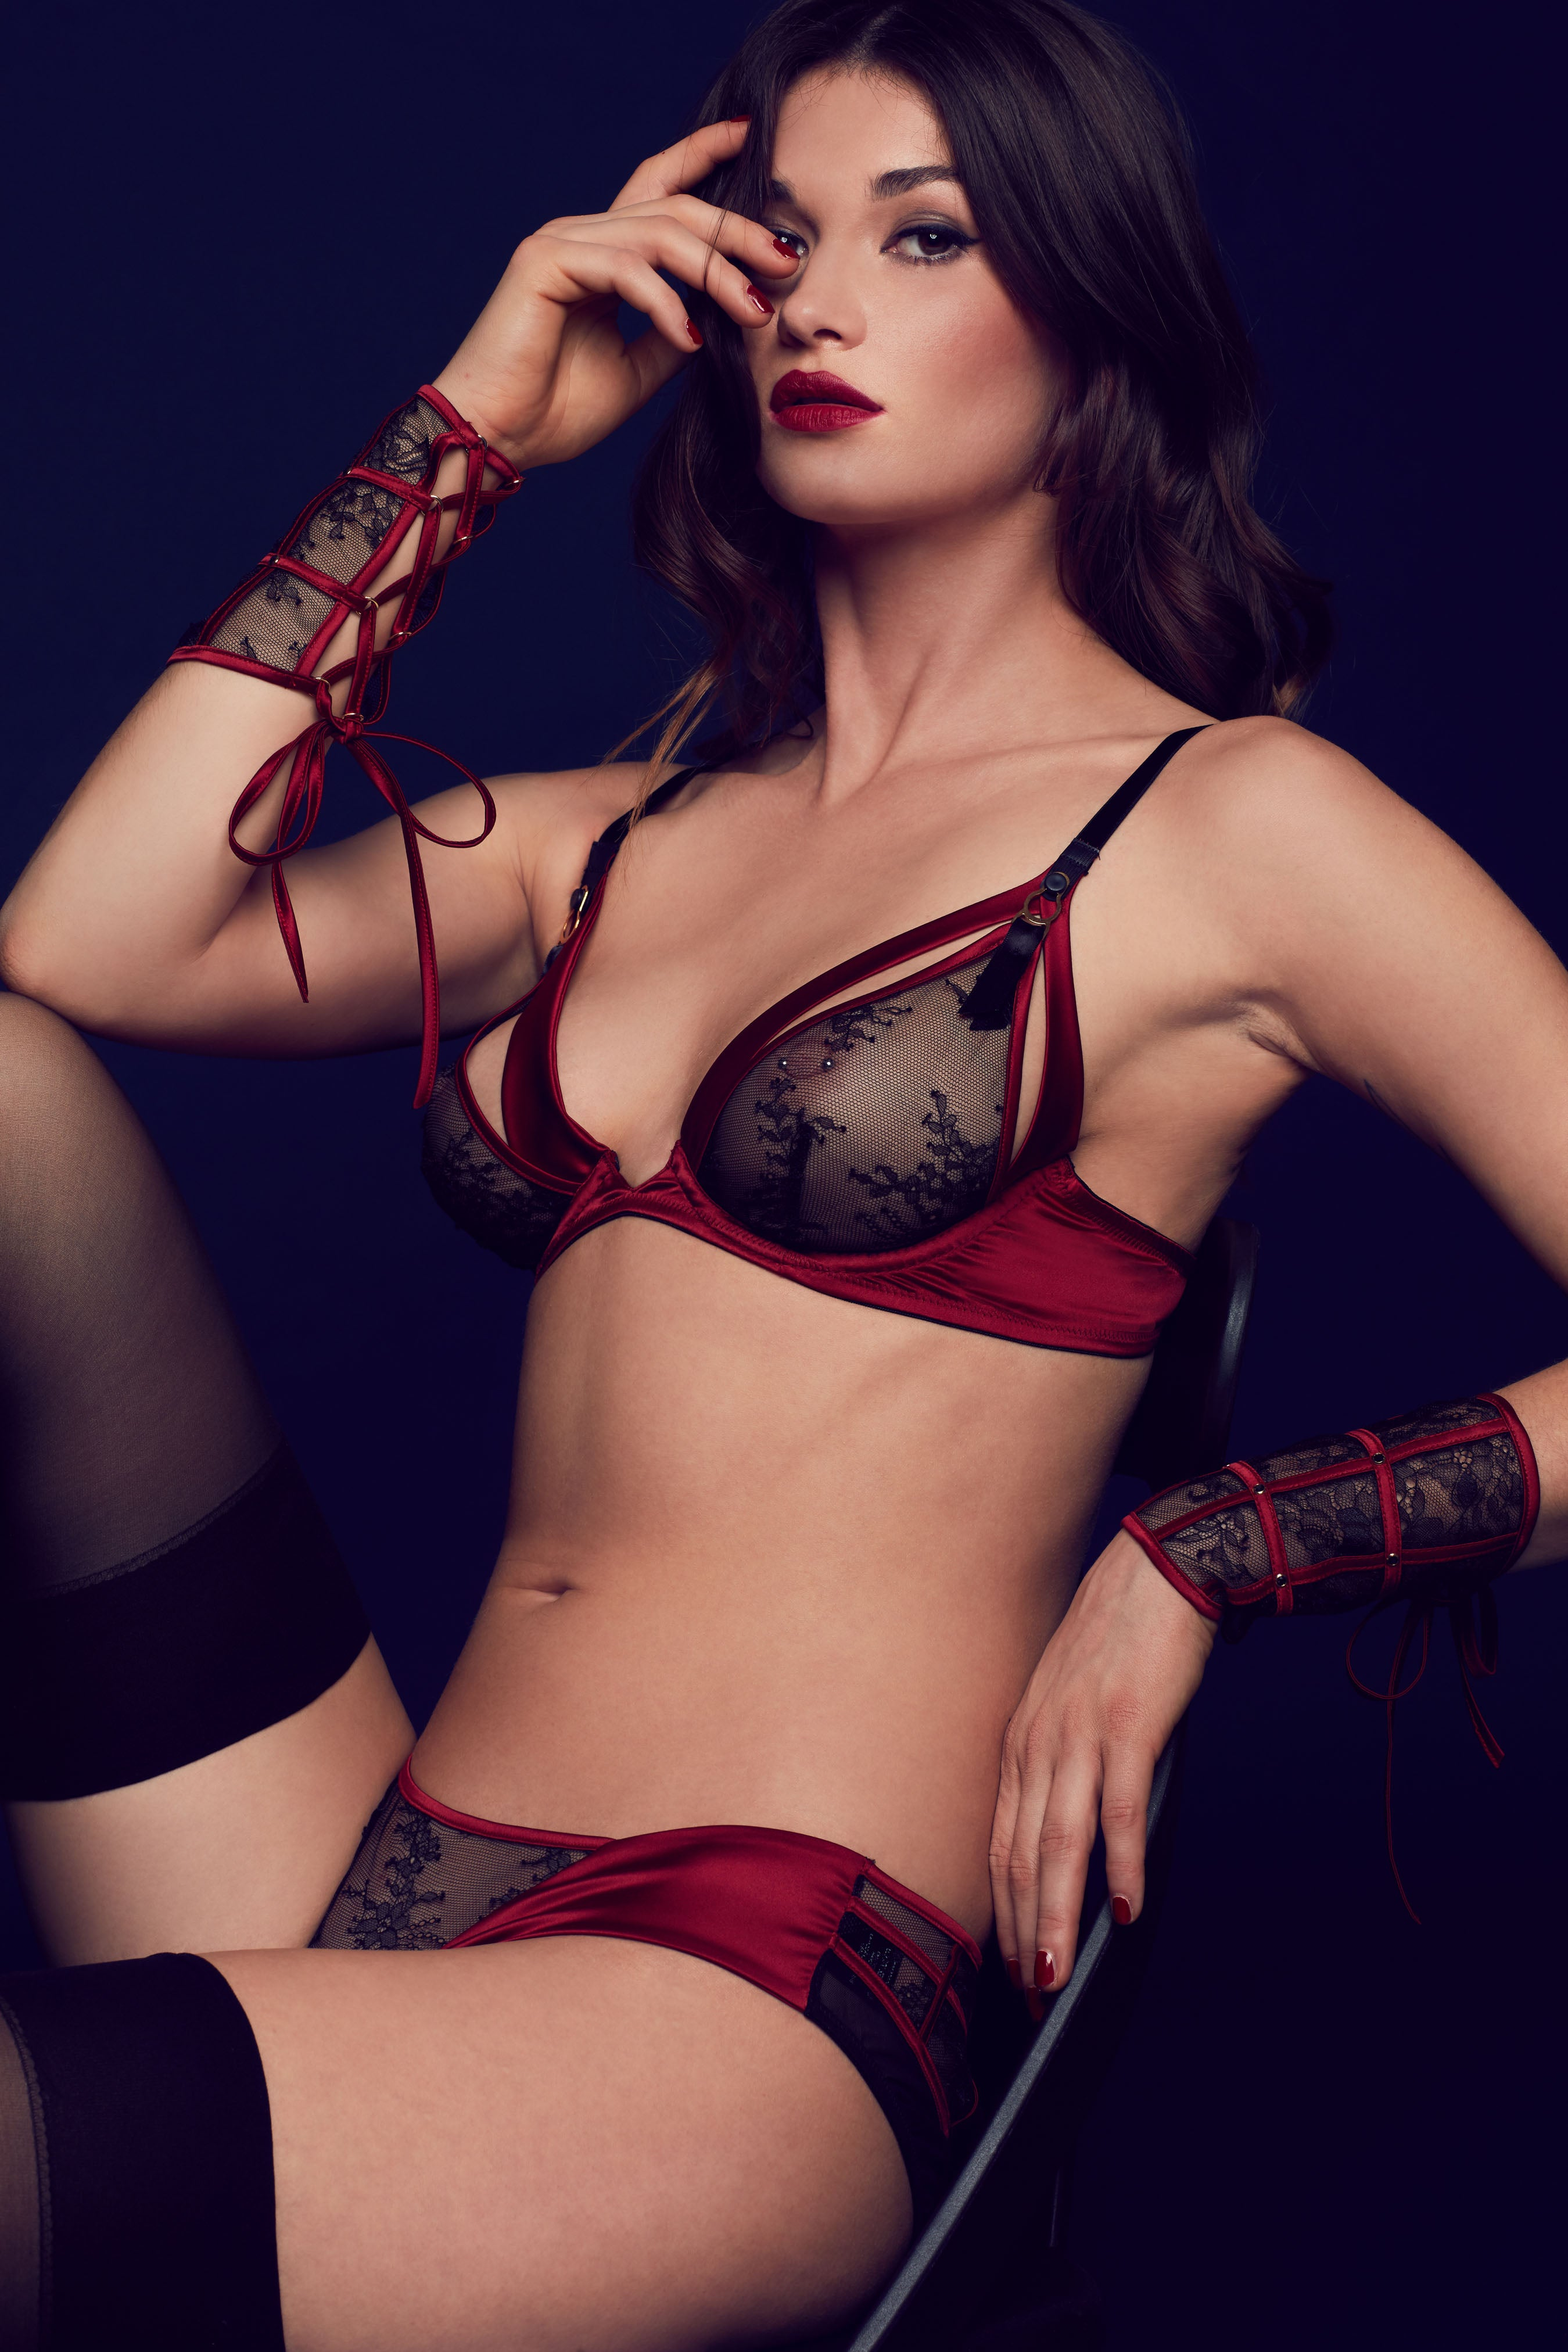 Luxury ouvert bra in sheer black lace and deep red satin, part of Odette high end seductive lingerie collection